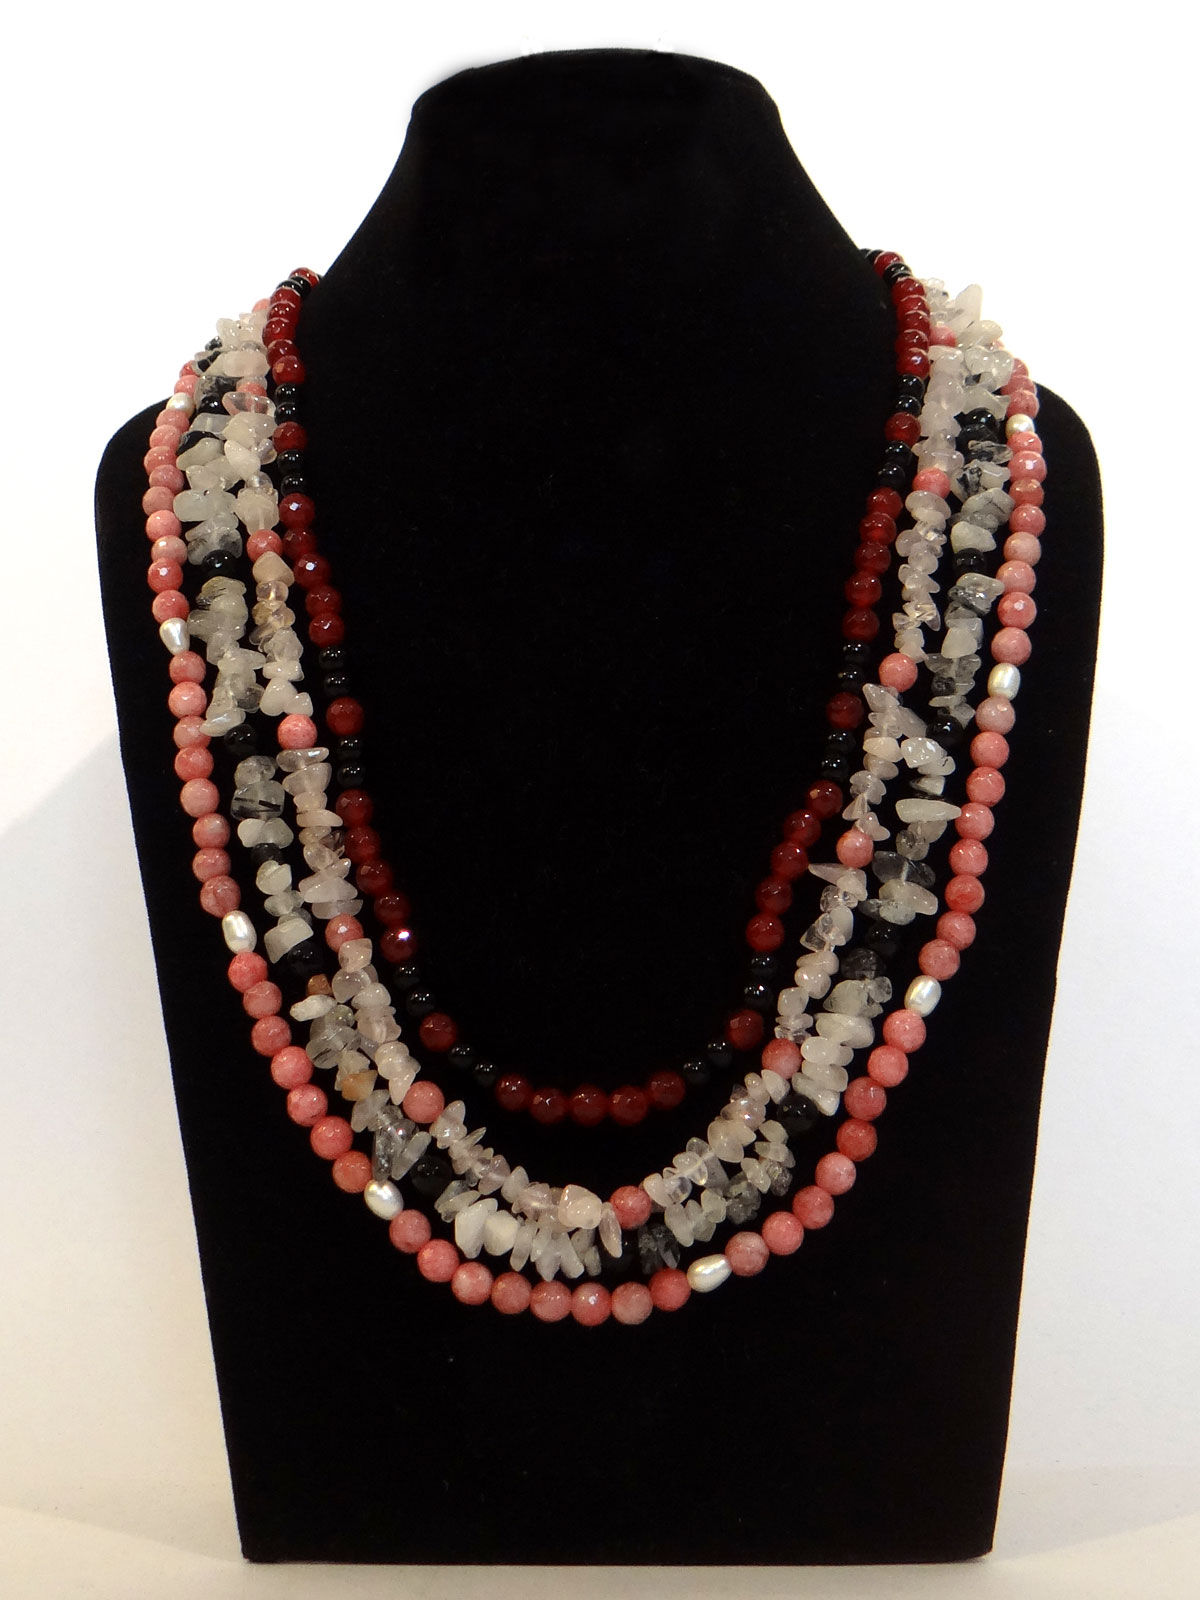 Alankriti multistring necklace with rose and grey quartz chips with earrings set